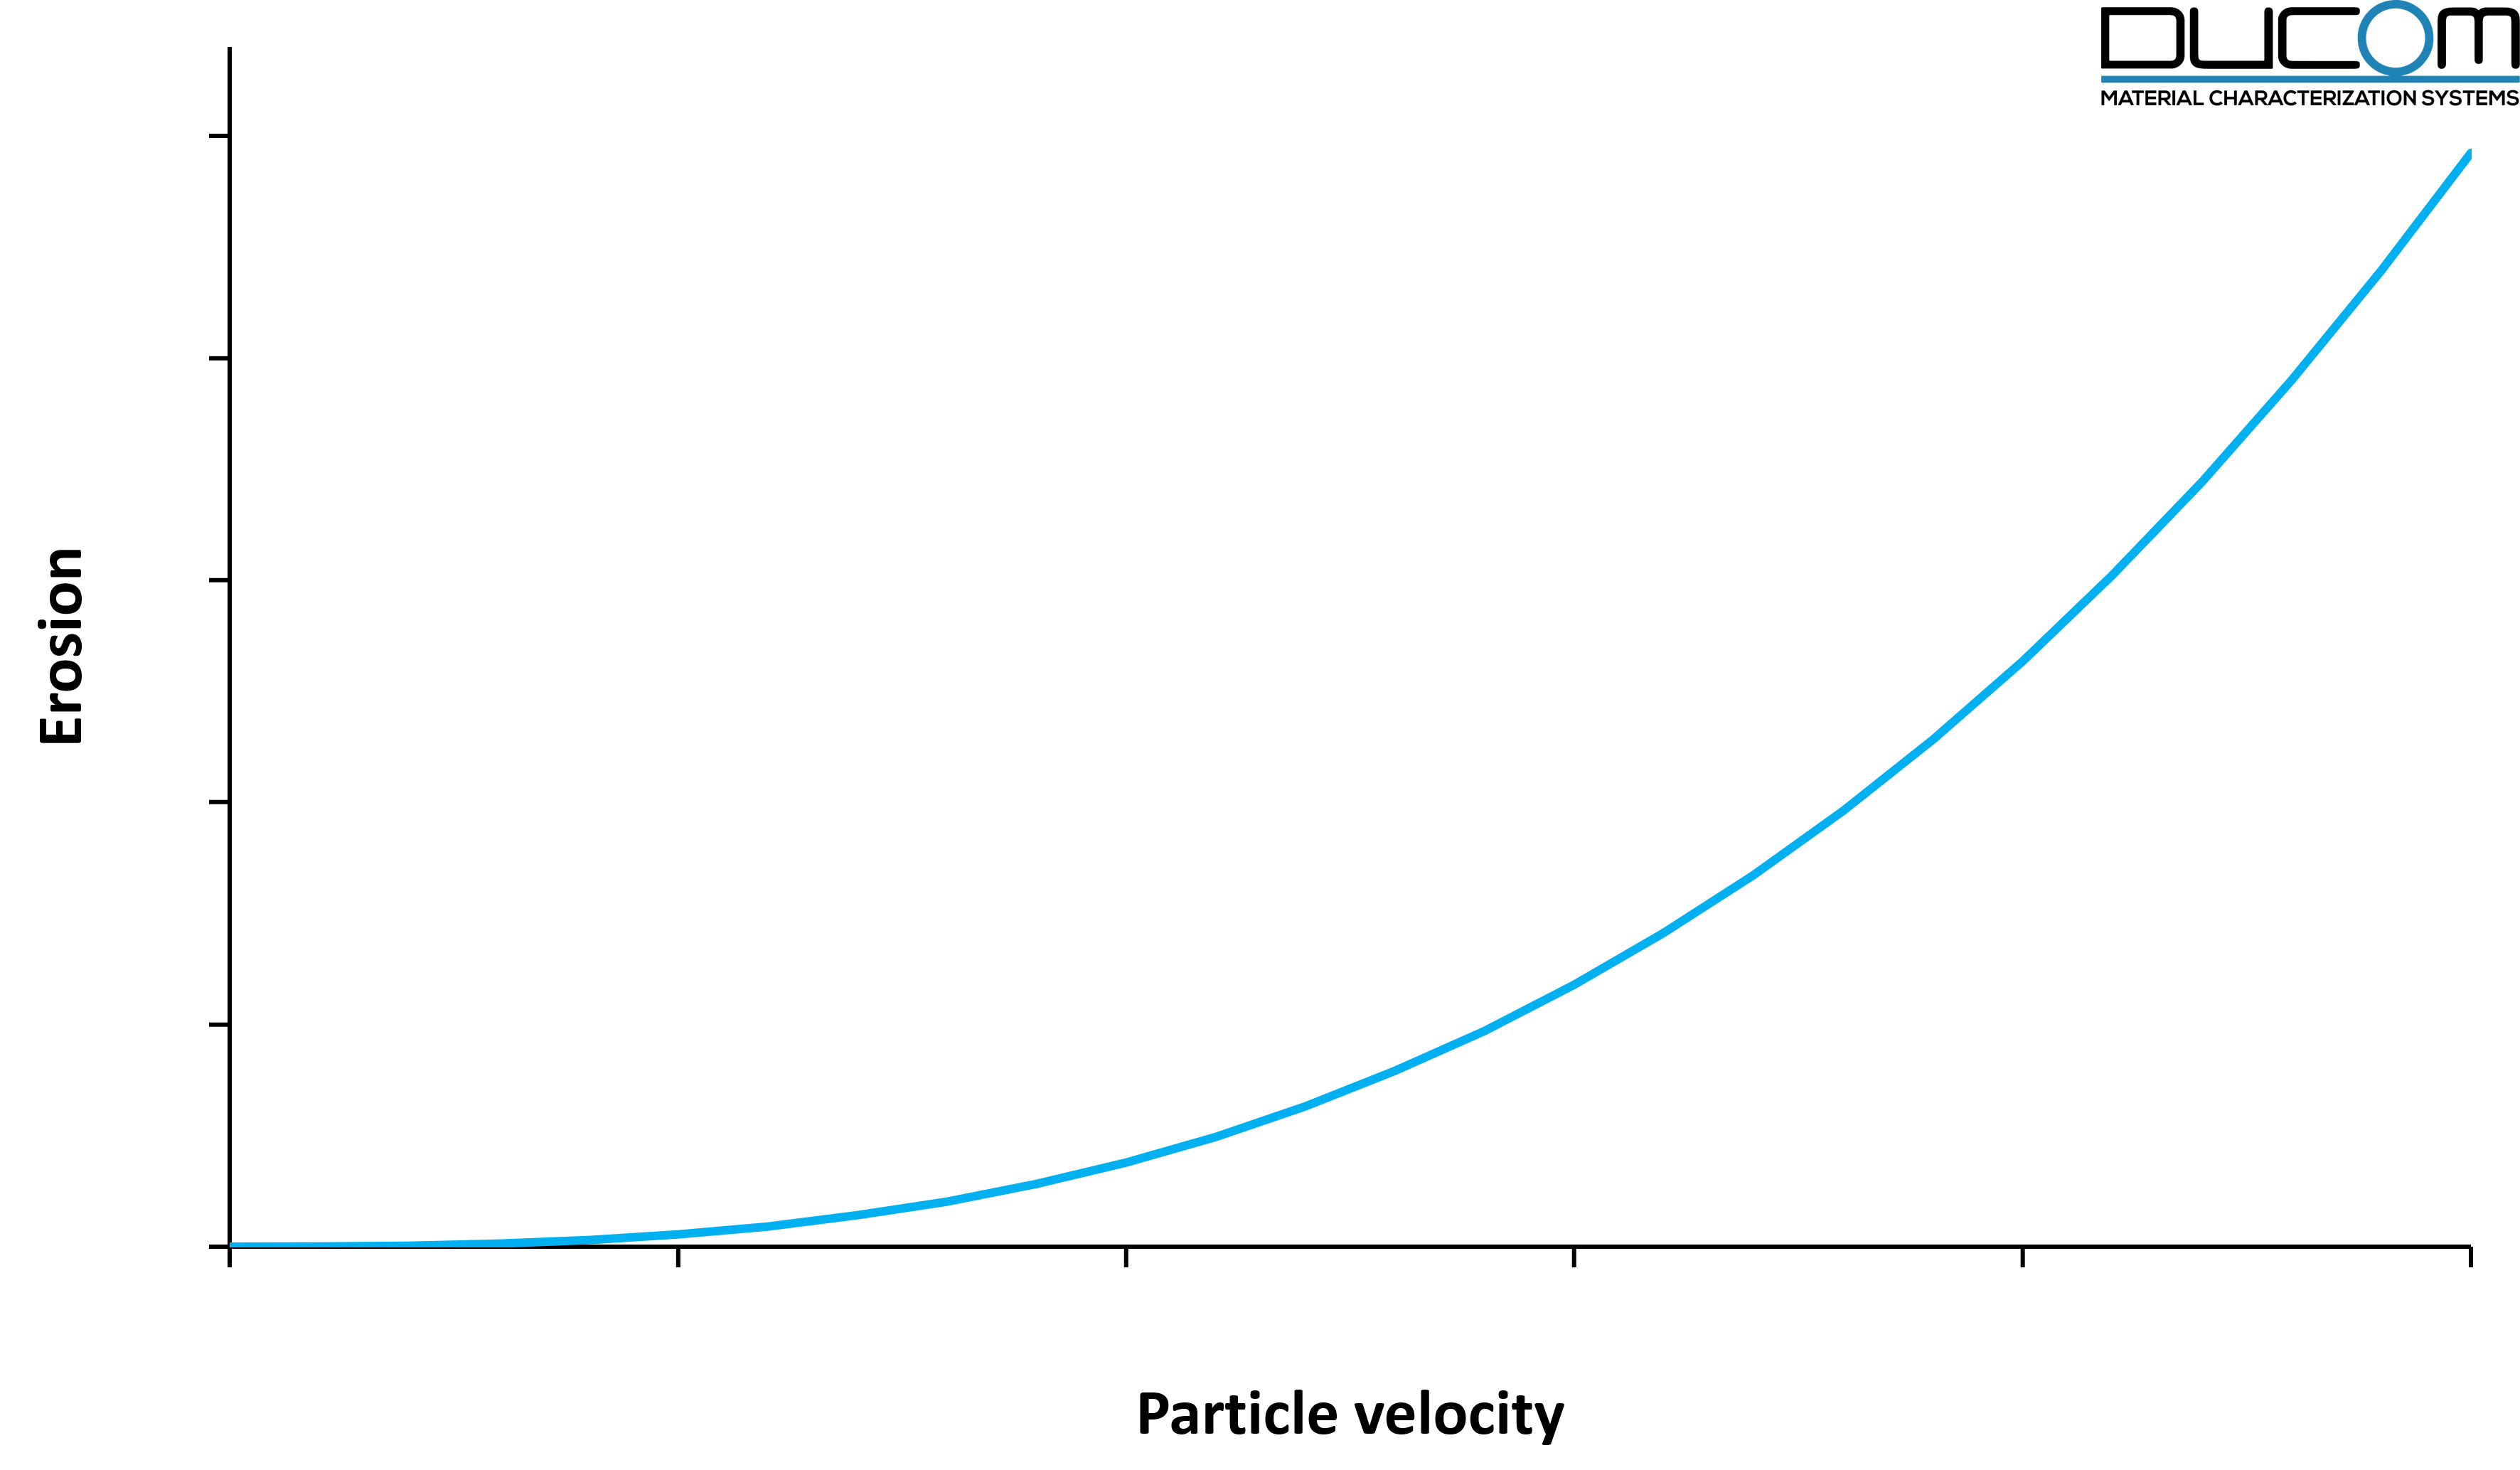 Erosion of TBCs with respect to particle velocity